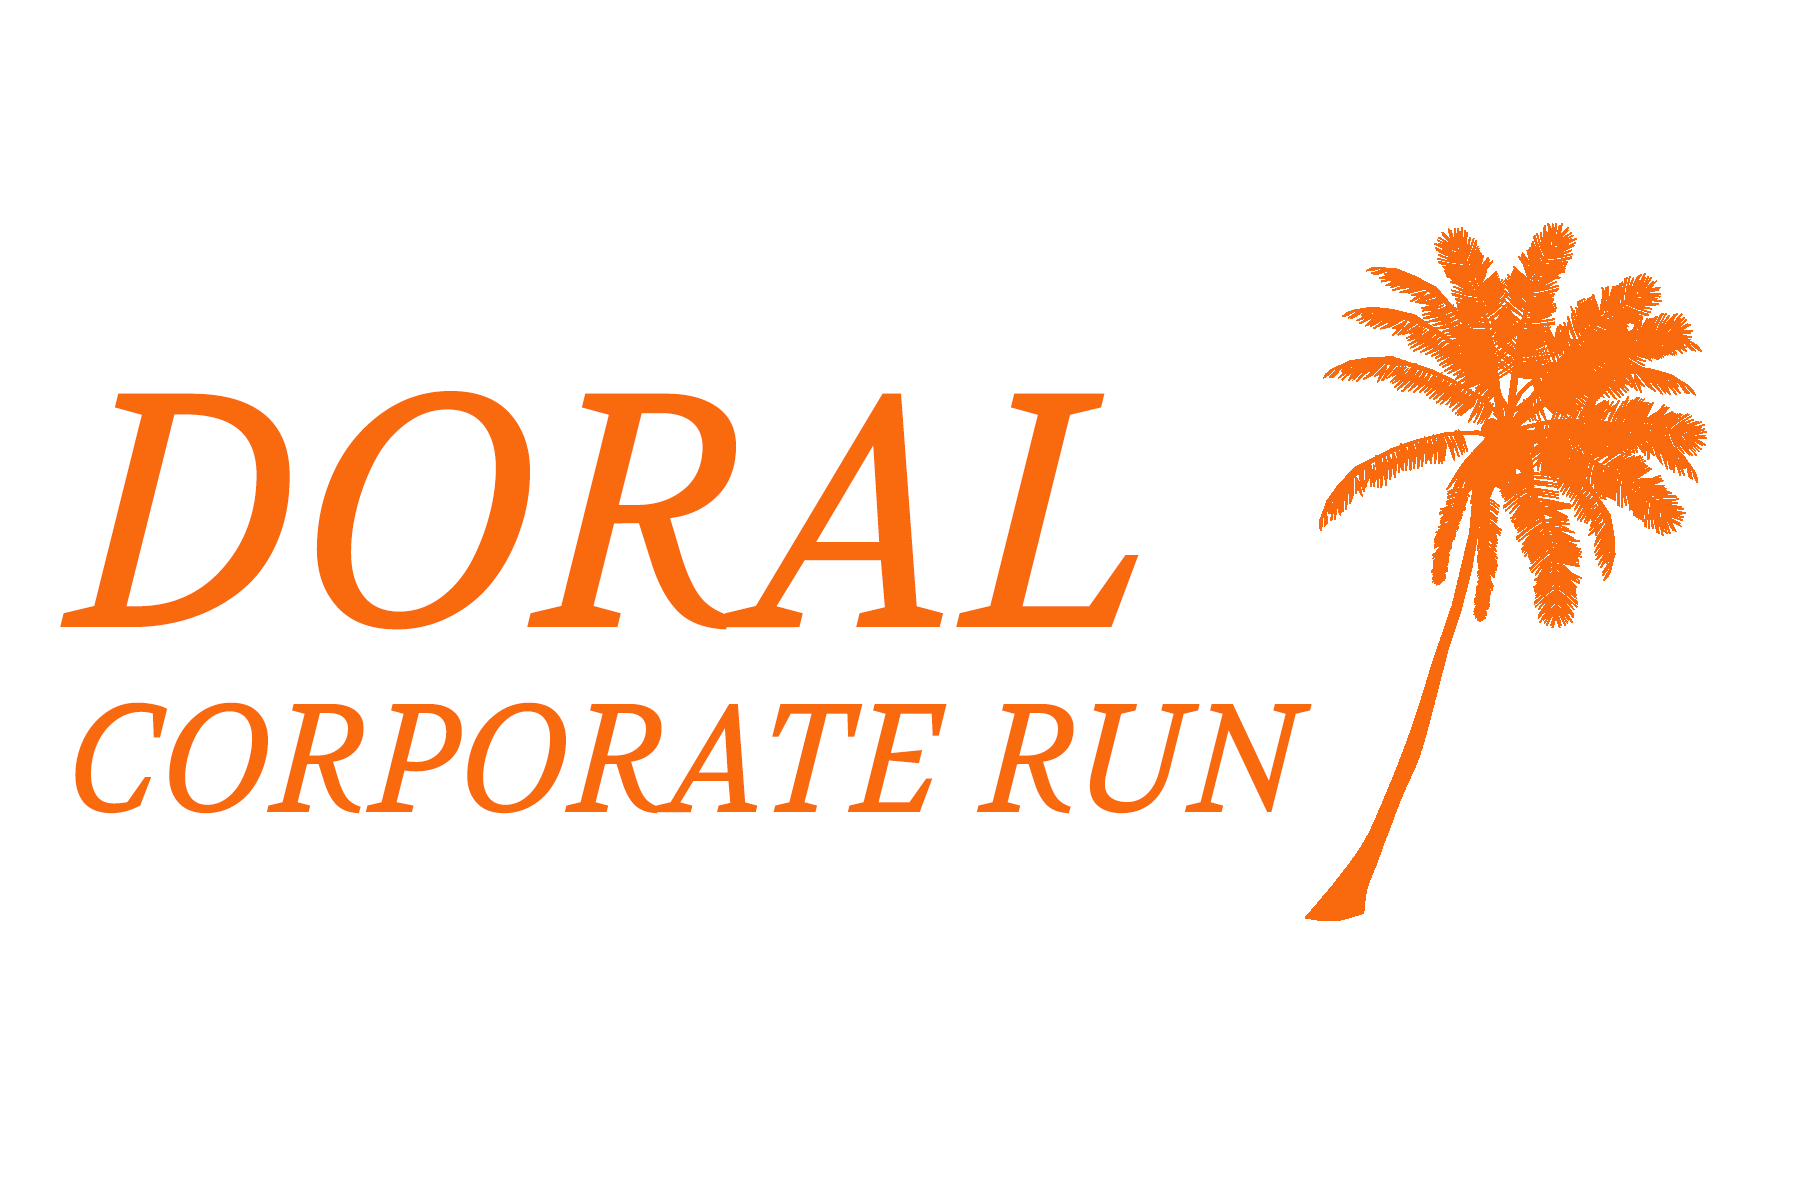 Doral Corporate Run Logo